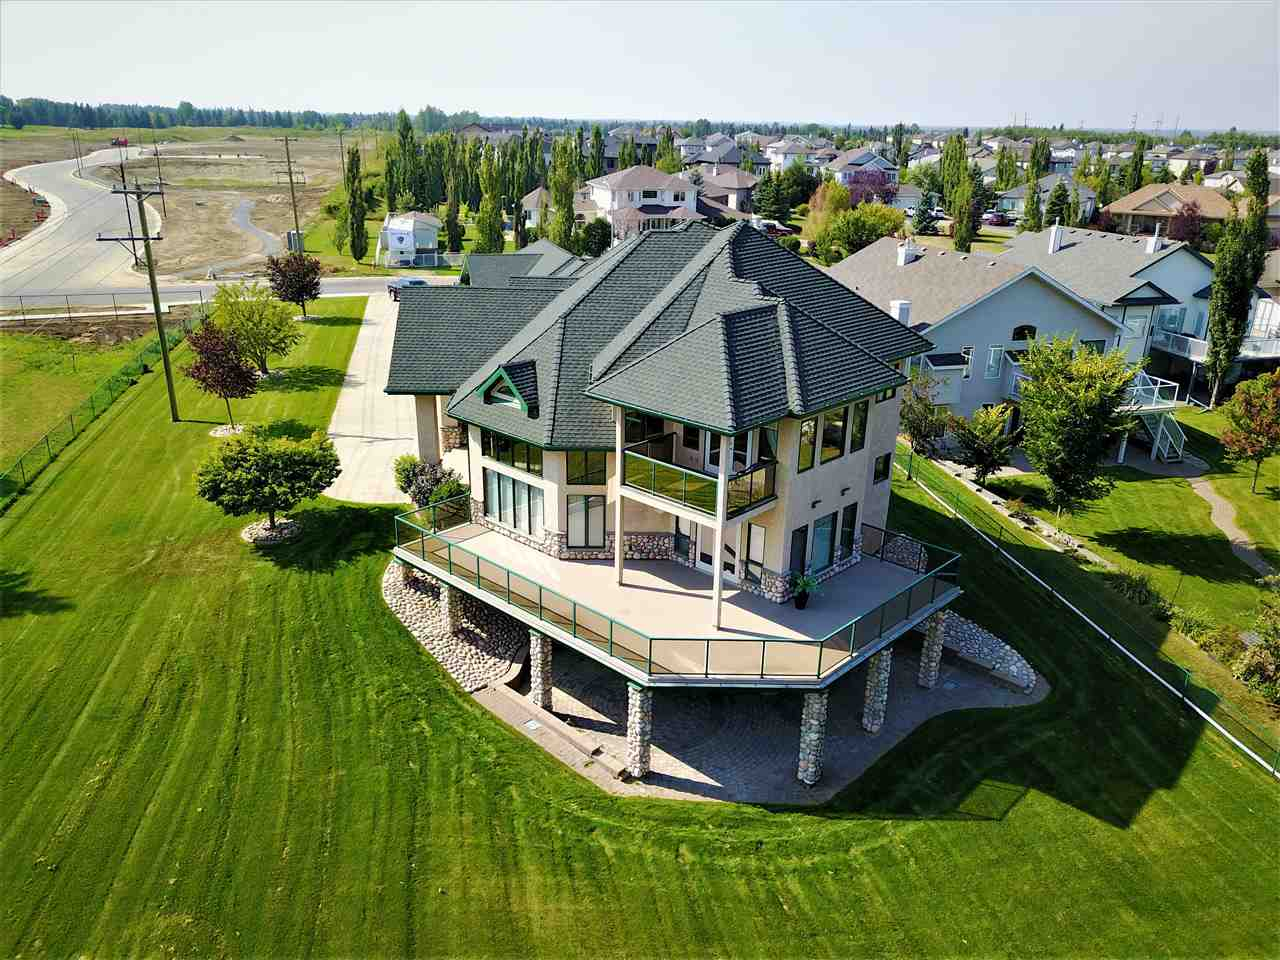 Amazing. With too many features to list this home will check off all the boxes on your wish list and more! 15 Briarwood Way is stunning and designed with distinction! Backing the 5th hole of the Stony Plain Golf Course with over 5500 sq ft of total luxury living space. The main floor features soaring ceilings, huge south facing windows, 3 sided gas fireplace, dining area & massive kitchen with 8 appliances! The custom curved staircase leads to the 2nd floor and French doors to your master retreat. Beauty awaits you in the massive 5pc en-suite with air jet tub, spacious sitting area & private balcony where you?ll frame the view of the golf course & park. The f/f walk-out basement features a wet-bar & gas fireplace. 4 bedrooms total, main floor den/office, AC, in-floor heat in garage & basement, electric blinds, built-in sound & much more! The 8 stall garage is gorgeous & features a drive-through overhead door, bathroom, & covered RV parking. See for yourself!